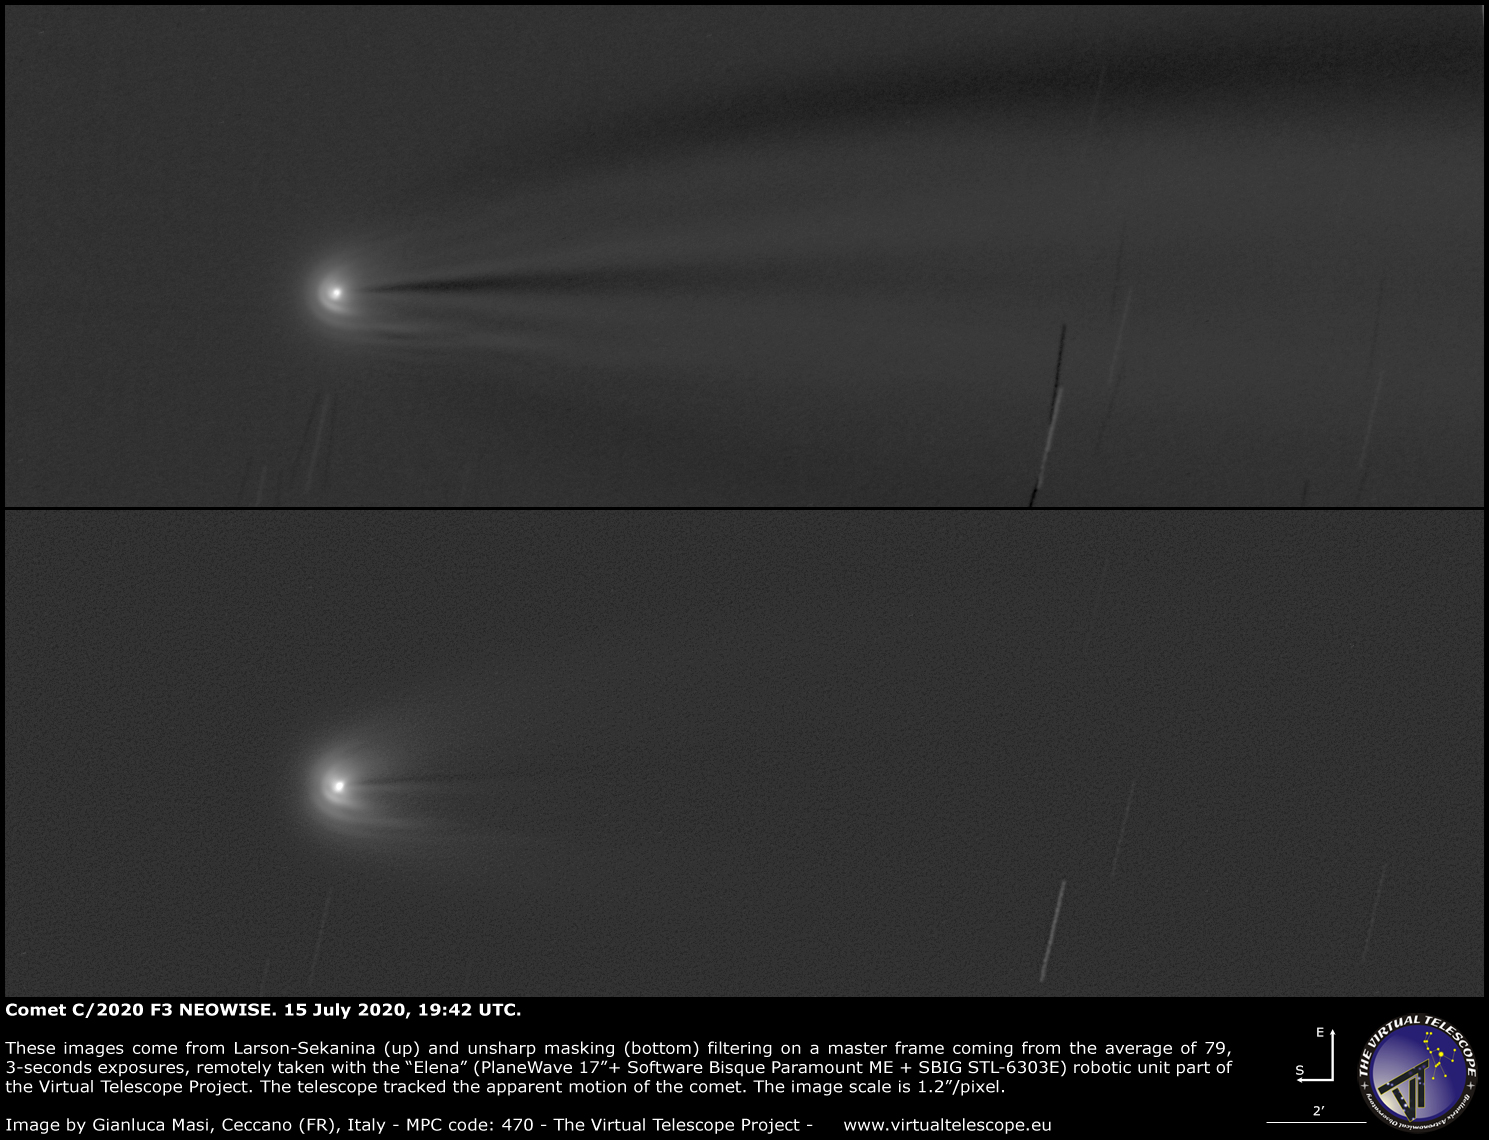 Comet C/2020 F3 NEOWISE: a close-up - 15 July 2020.